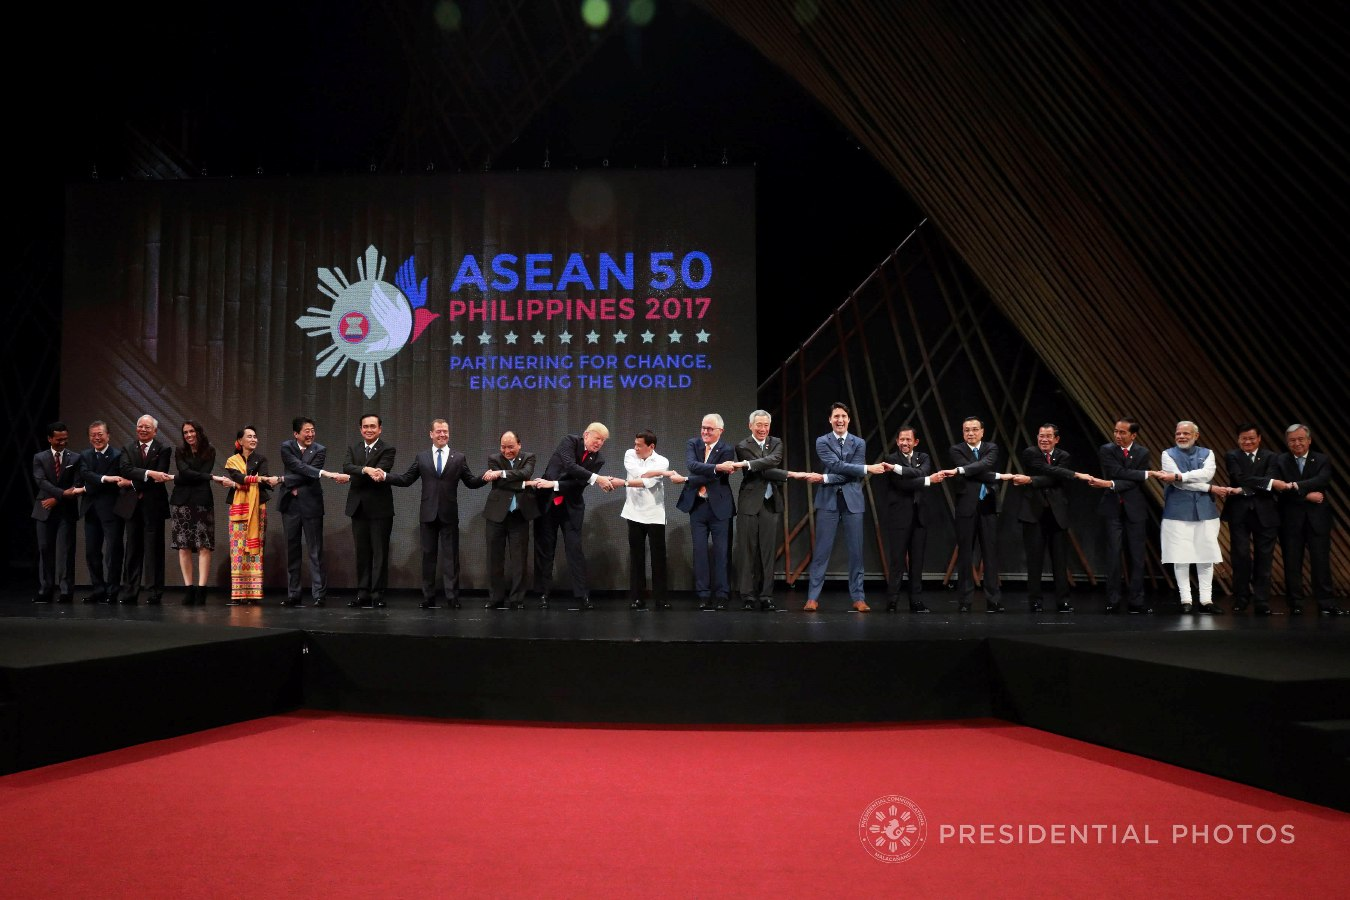 President Rodrigo Roa Duterte and the rest of the leaders from the Association of Southeast Asian Nations (ASEAN) member states and dialogue partners do the traditional ASEAN handshake as they pose for a photo during the opening of the 31st ASEAN Summit and Related Summits at the Cultural Center of the Philippines in Pasay City on November 13, 2017. The dialogue partners include New Zealand, Timor-Leste, Republic of Korea, USA, Australia, India, China, and Japan. ROBINSON NIÑAL JR./PRESIDENTIAL PHOTO